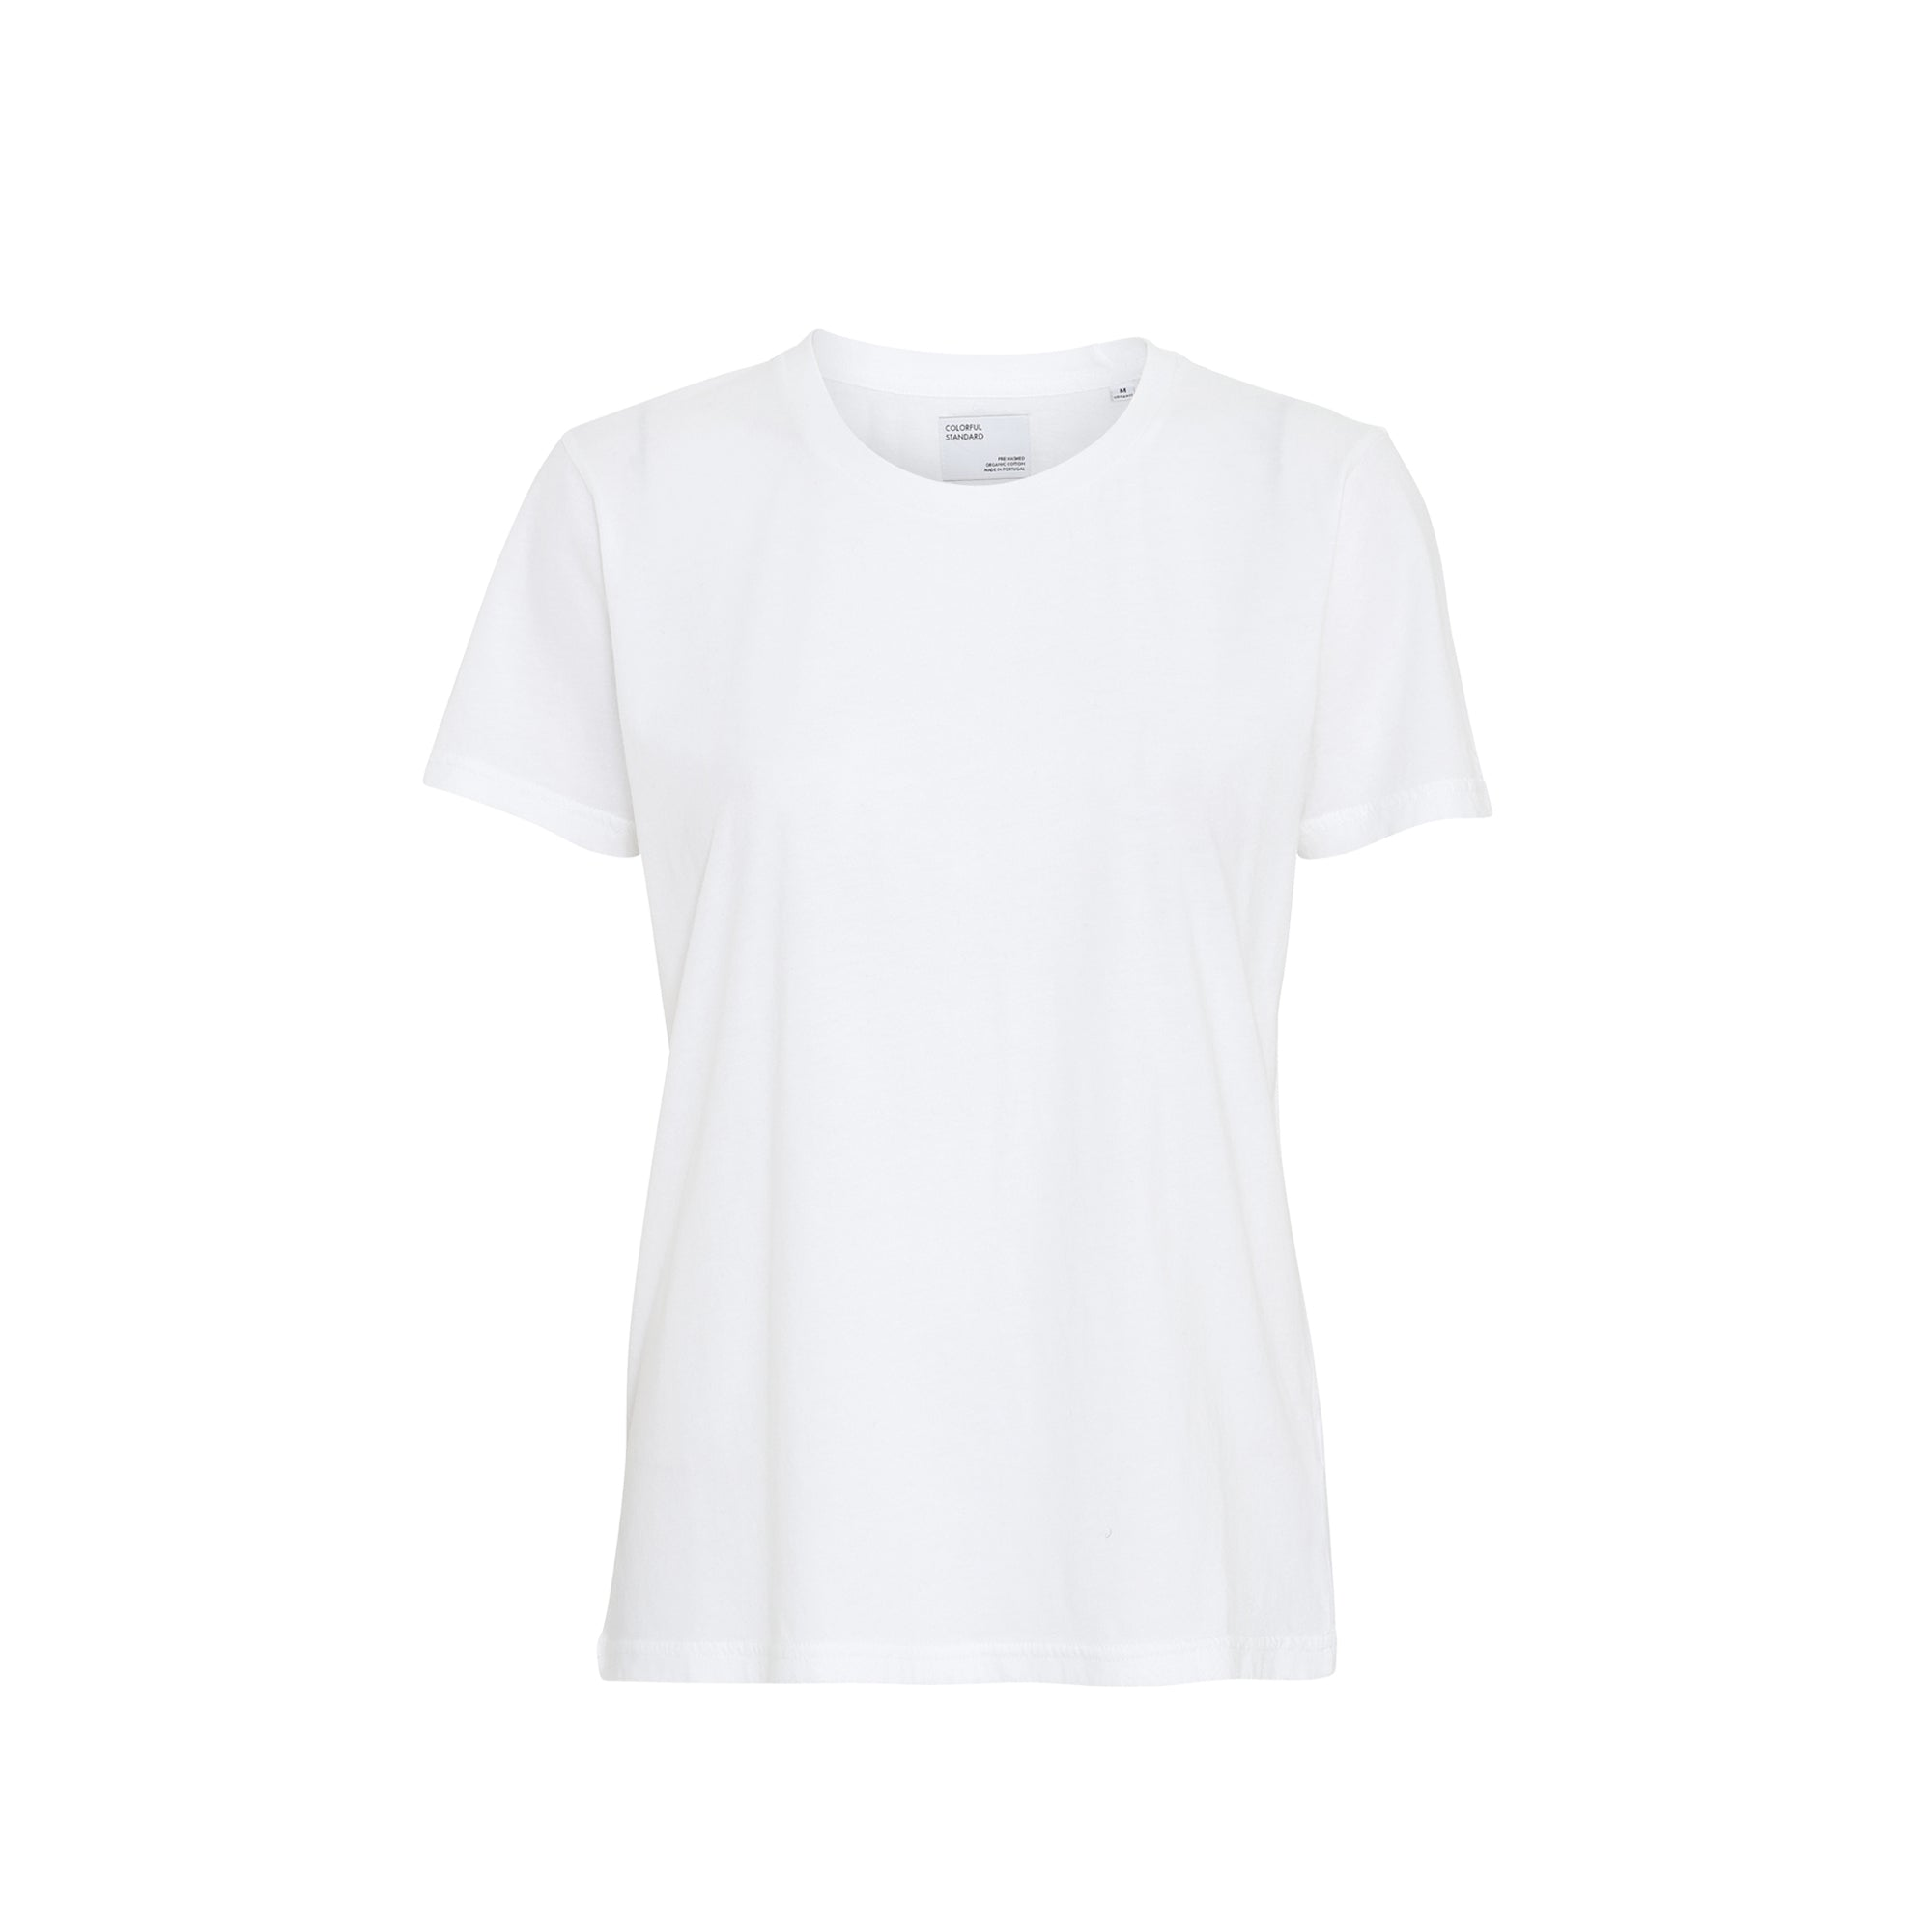 Colorful Standard Light Organic Tee - Optical White